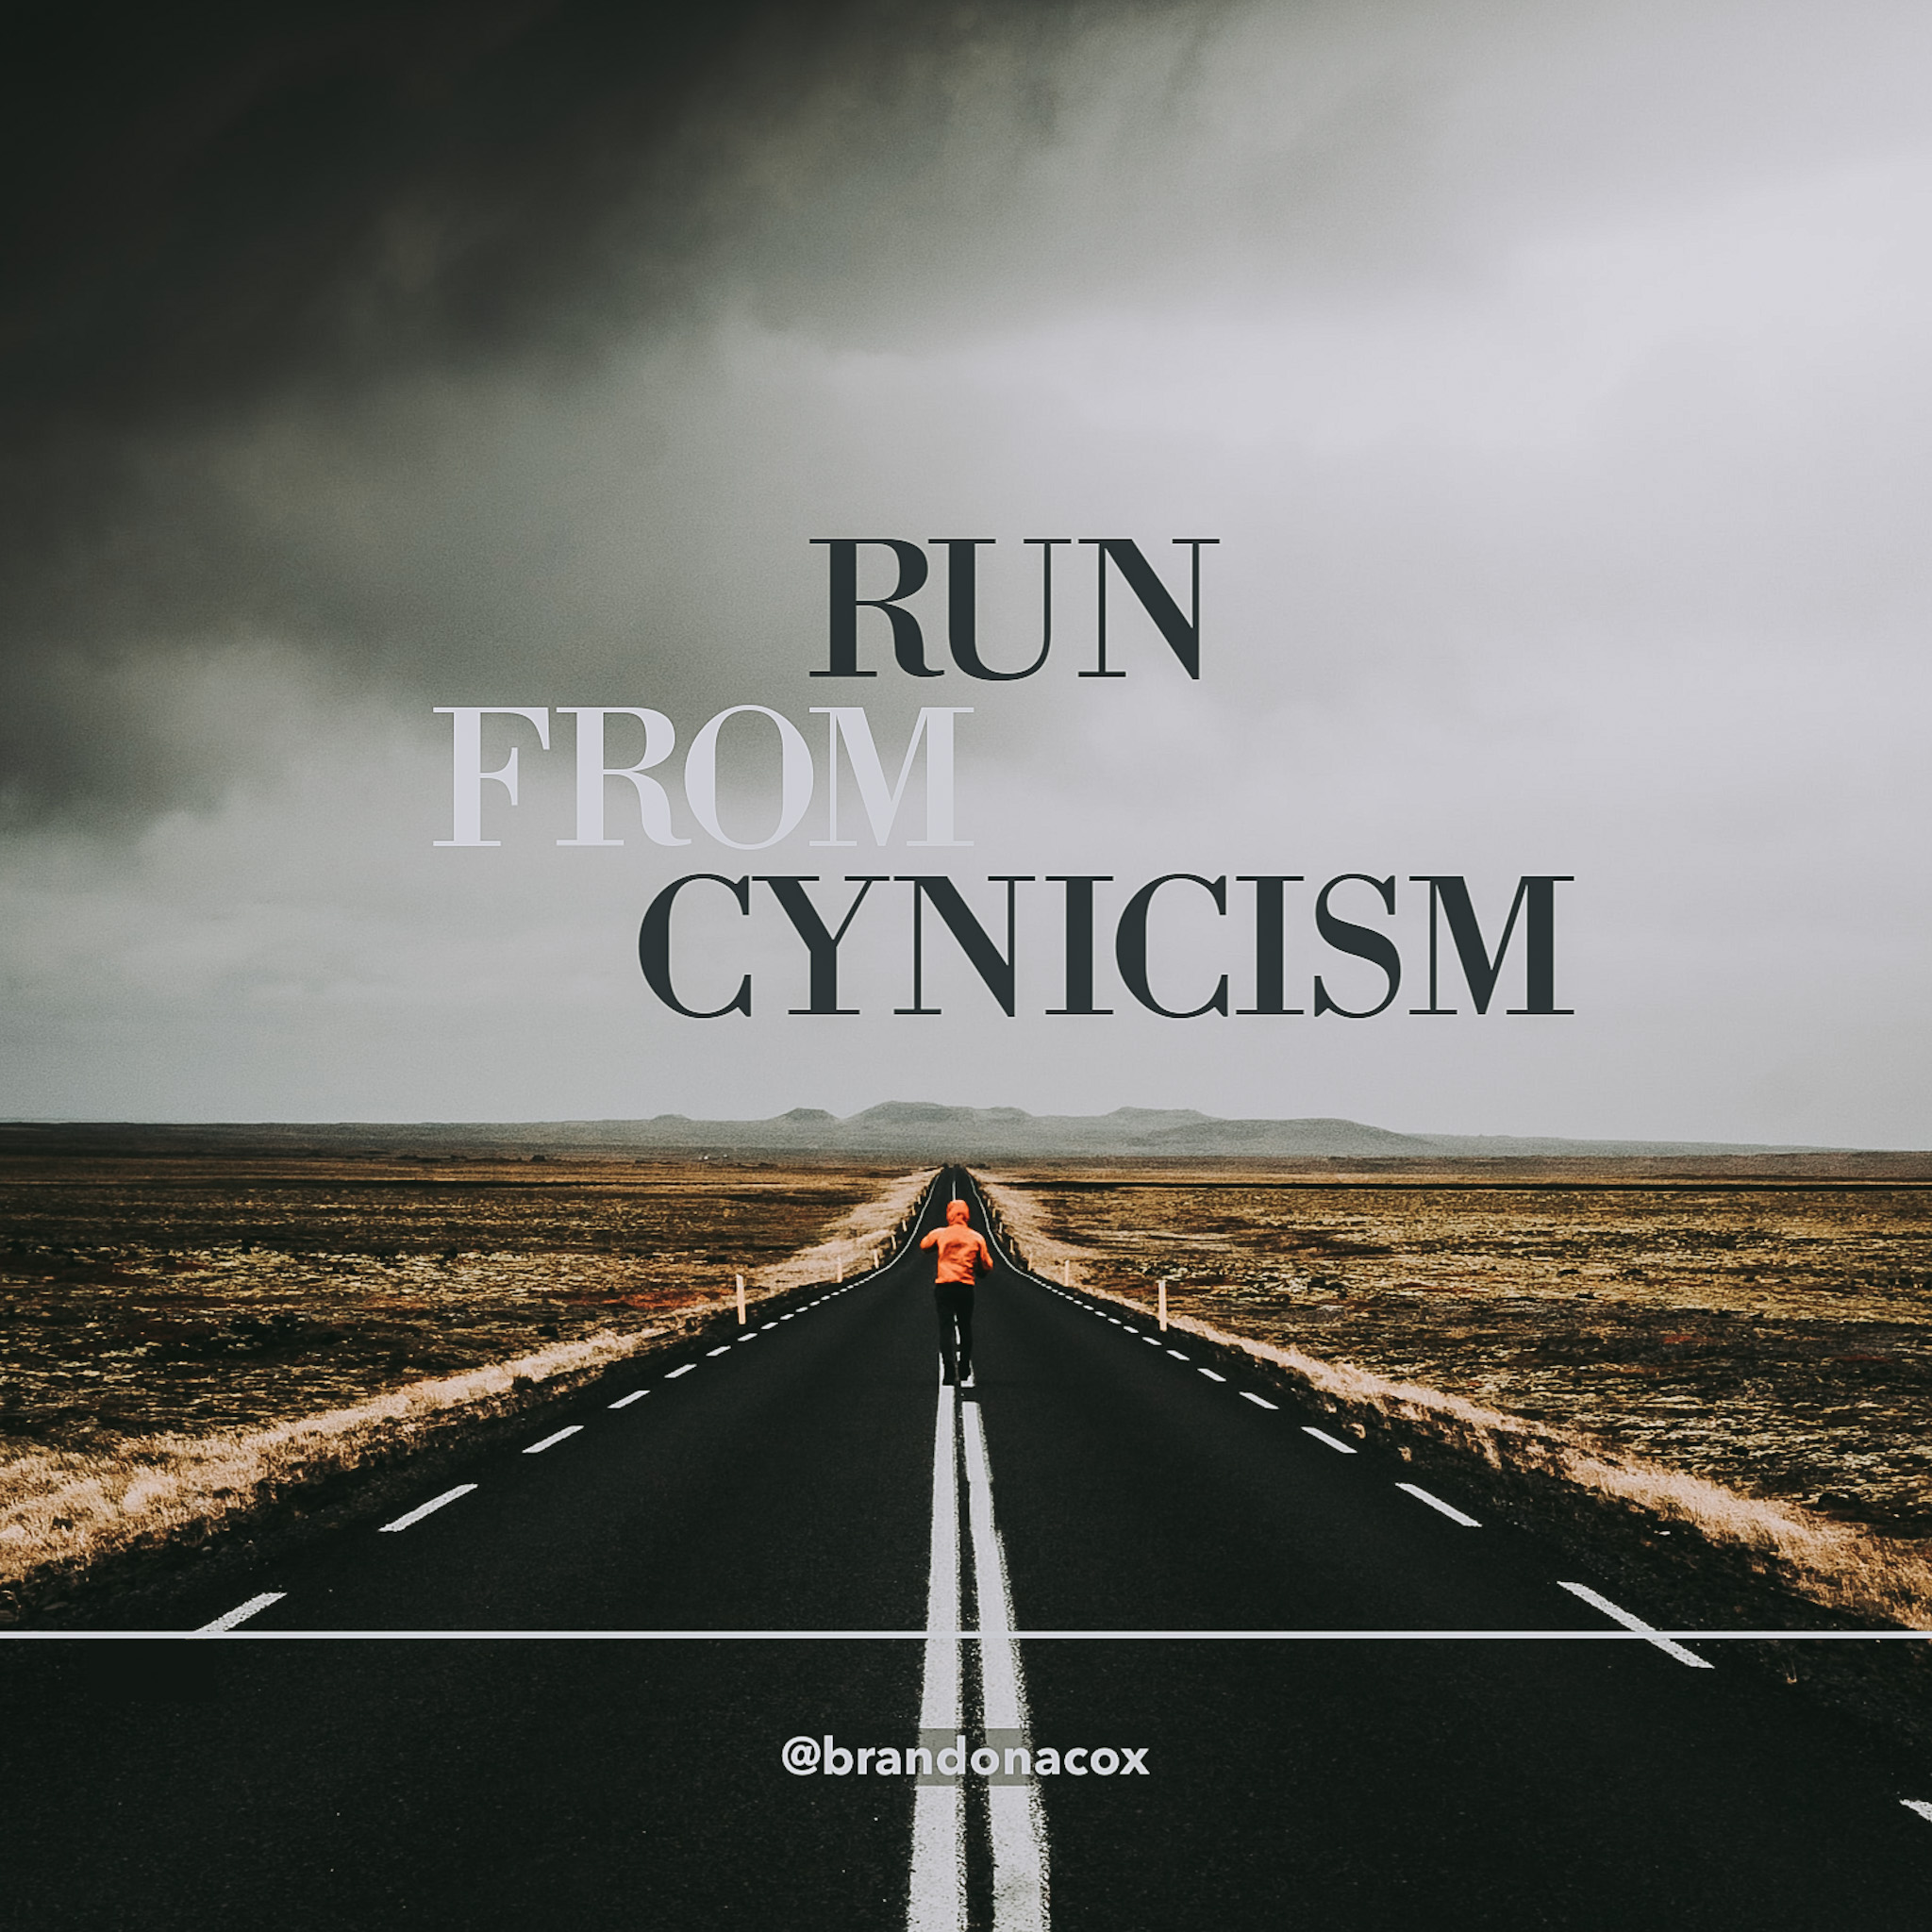 Run from Cynicism